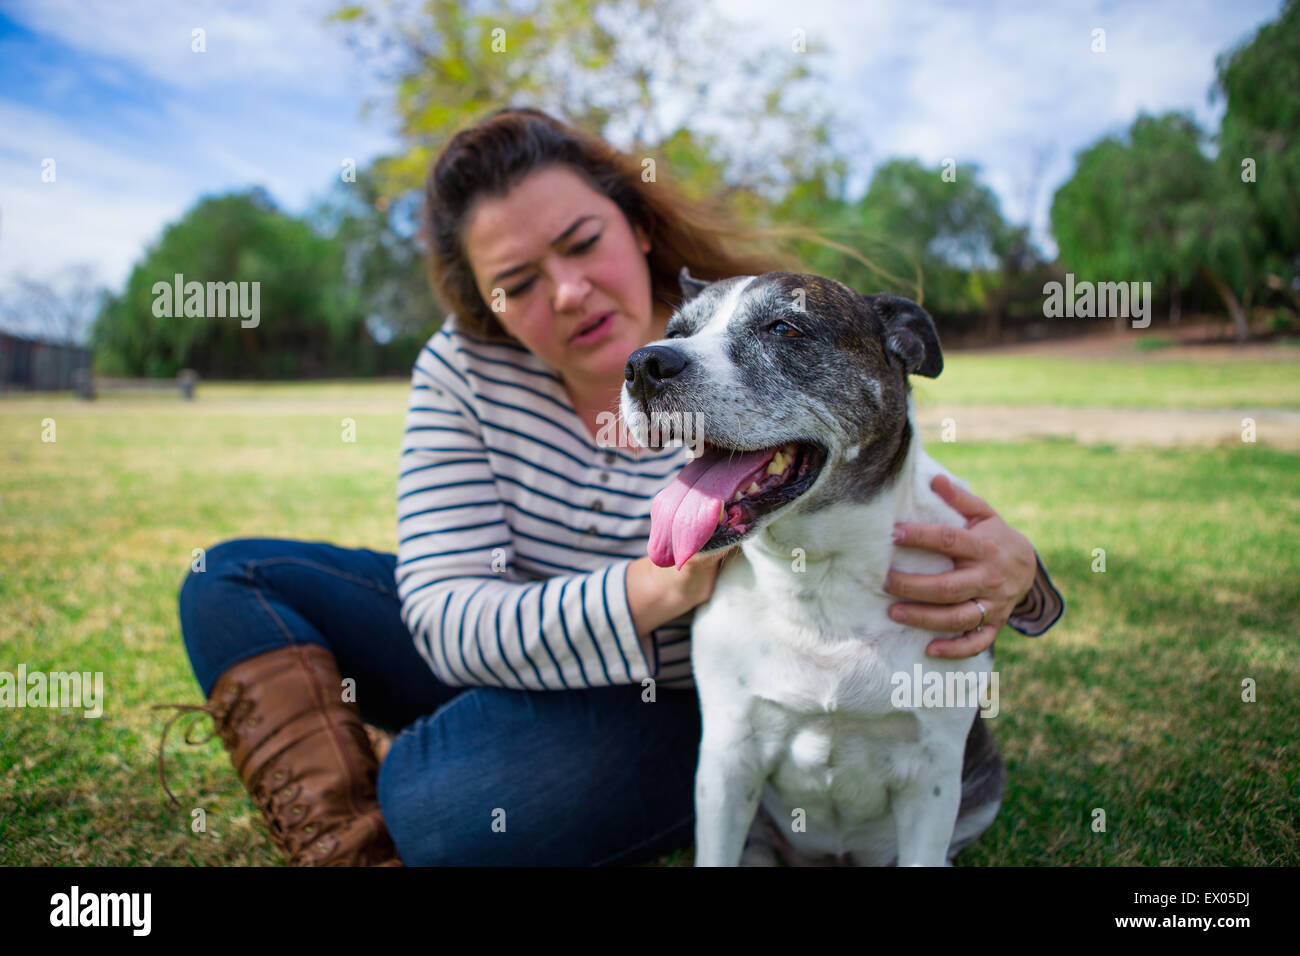 Mature woman petting old dog in park - Stock Image